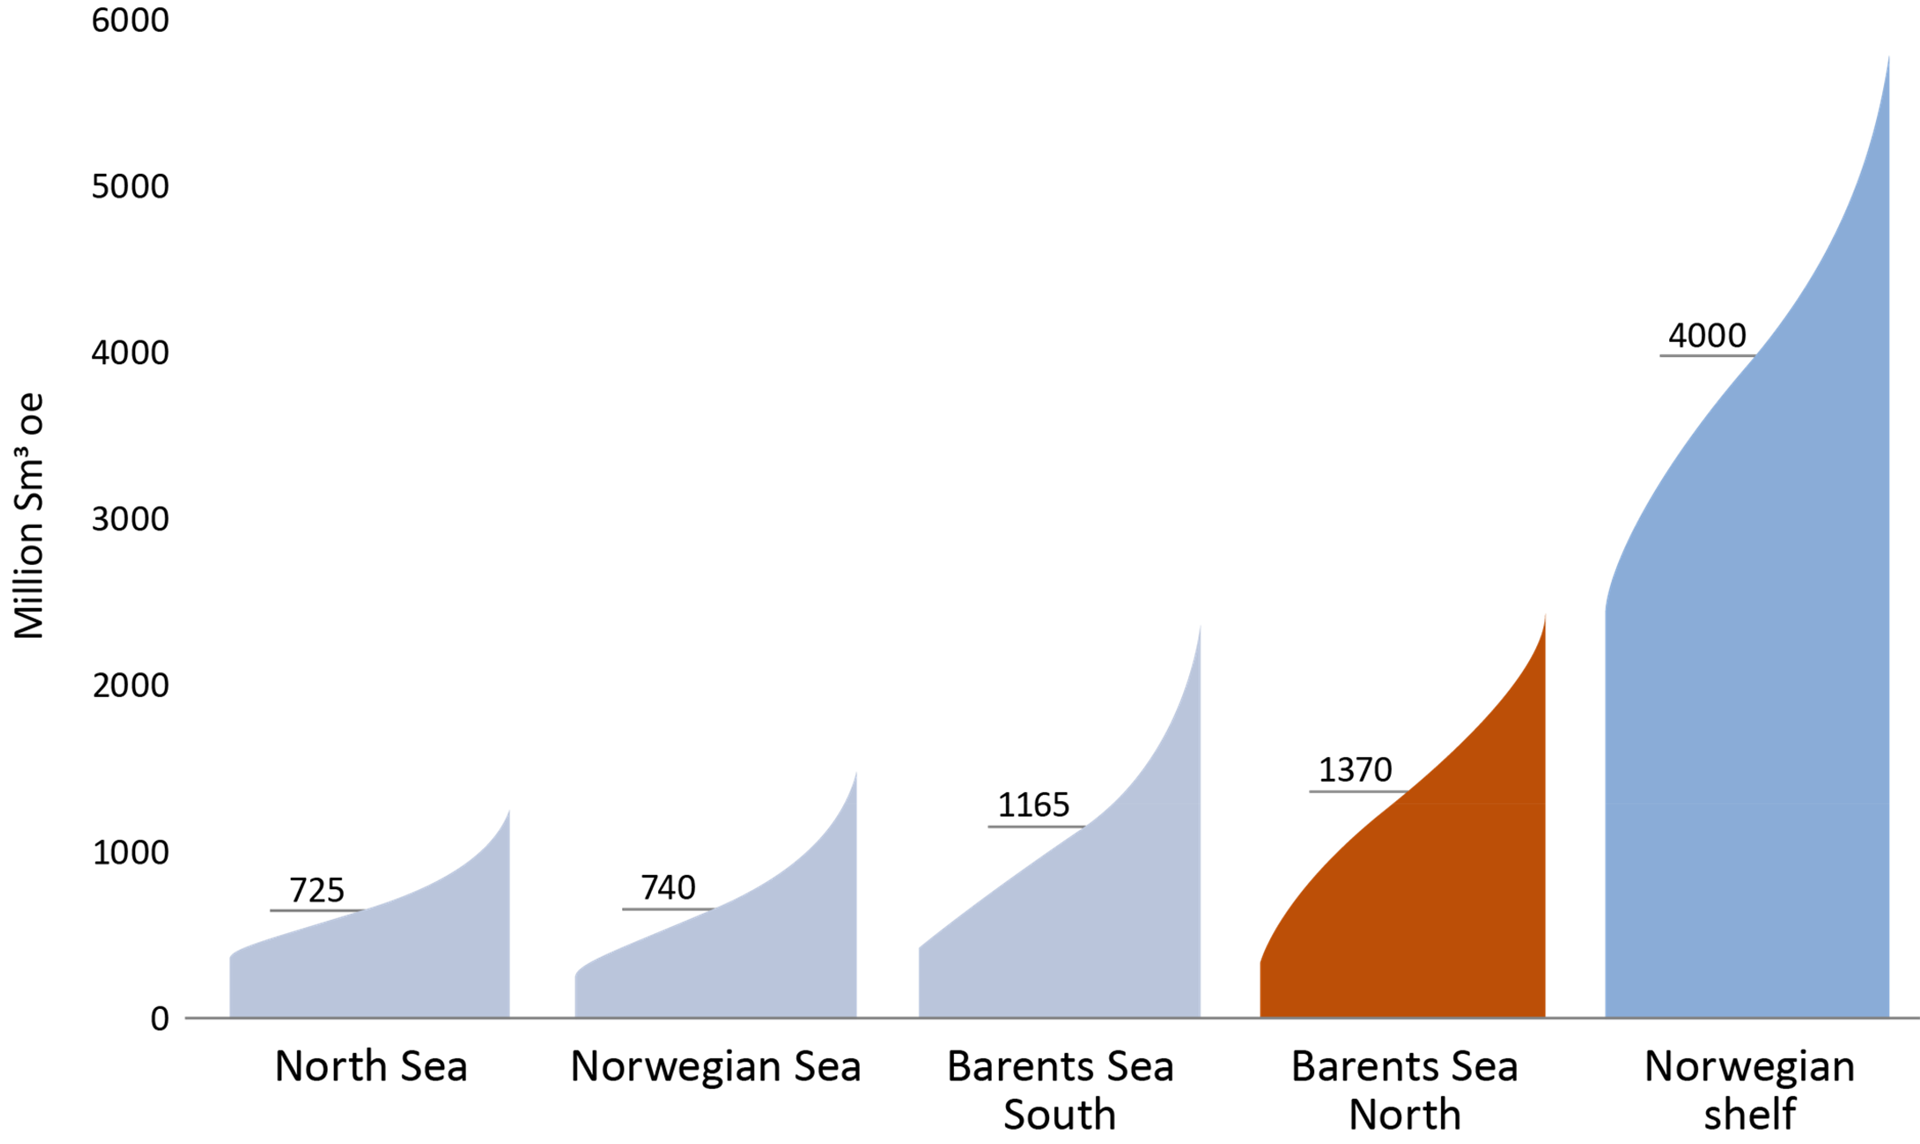 Figure 4‐2 Estimate of undiscovered resources on the Norwegian shelf